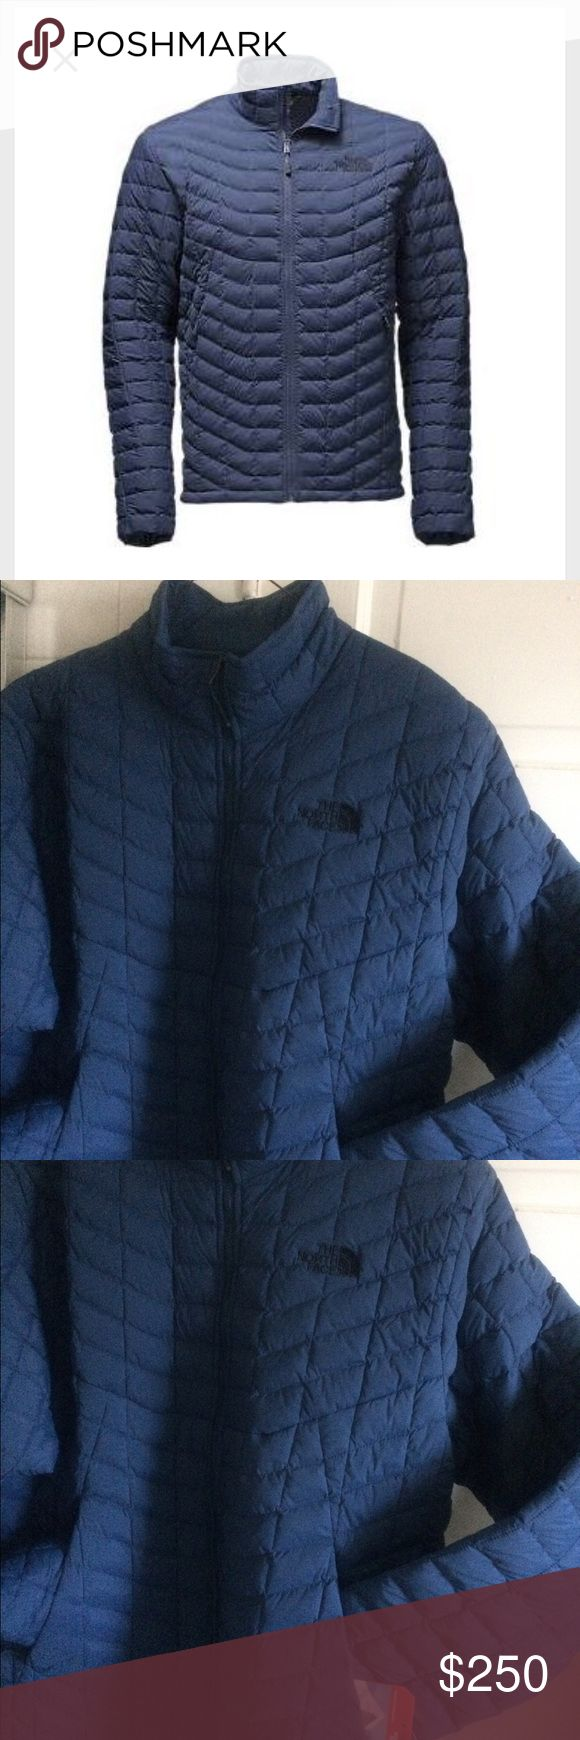 The Northface Men's Jacket This is a brand new men's North face thrmbal jacket . The size is large and the color is blue. This jacket is thin, but warm. Nice and durable. The North Face Jackets & Coats Utility Jackets